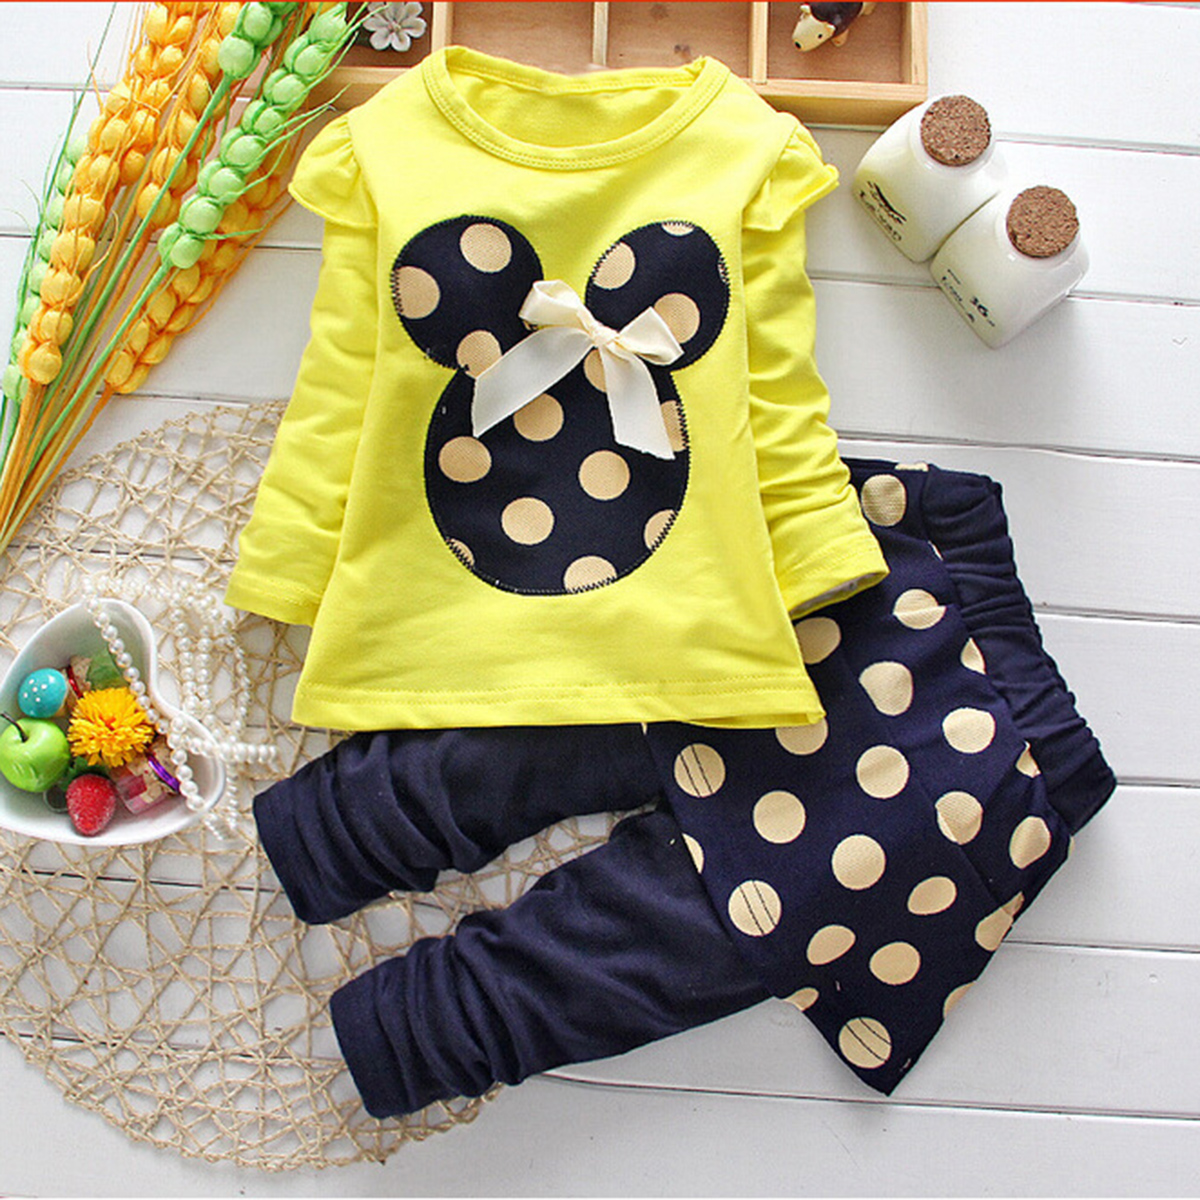 2 pcs Spring Autumn Baby Toddler Kids Suit Girls Clothing Sets Minnie Tops polka Dot T Shirt Pants skirt dress Outfits 2016 hot sweet baby kids girls 2pcs outfit clothes ruffled t shirt tops dot pants suit clothing sets ll6